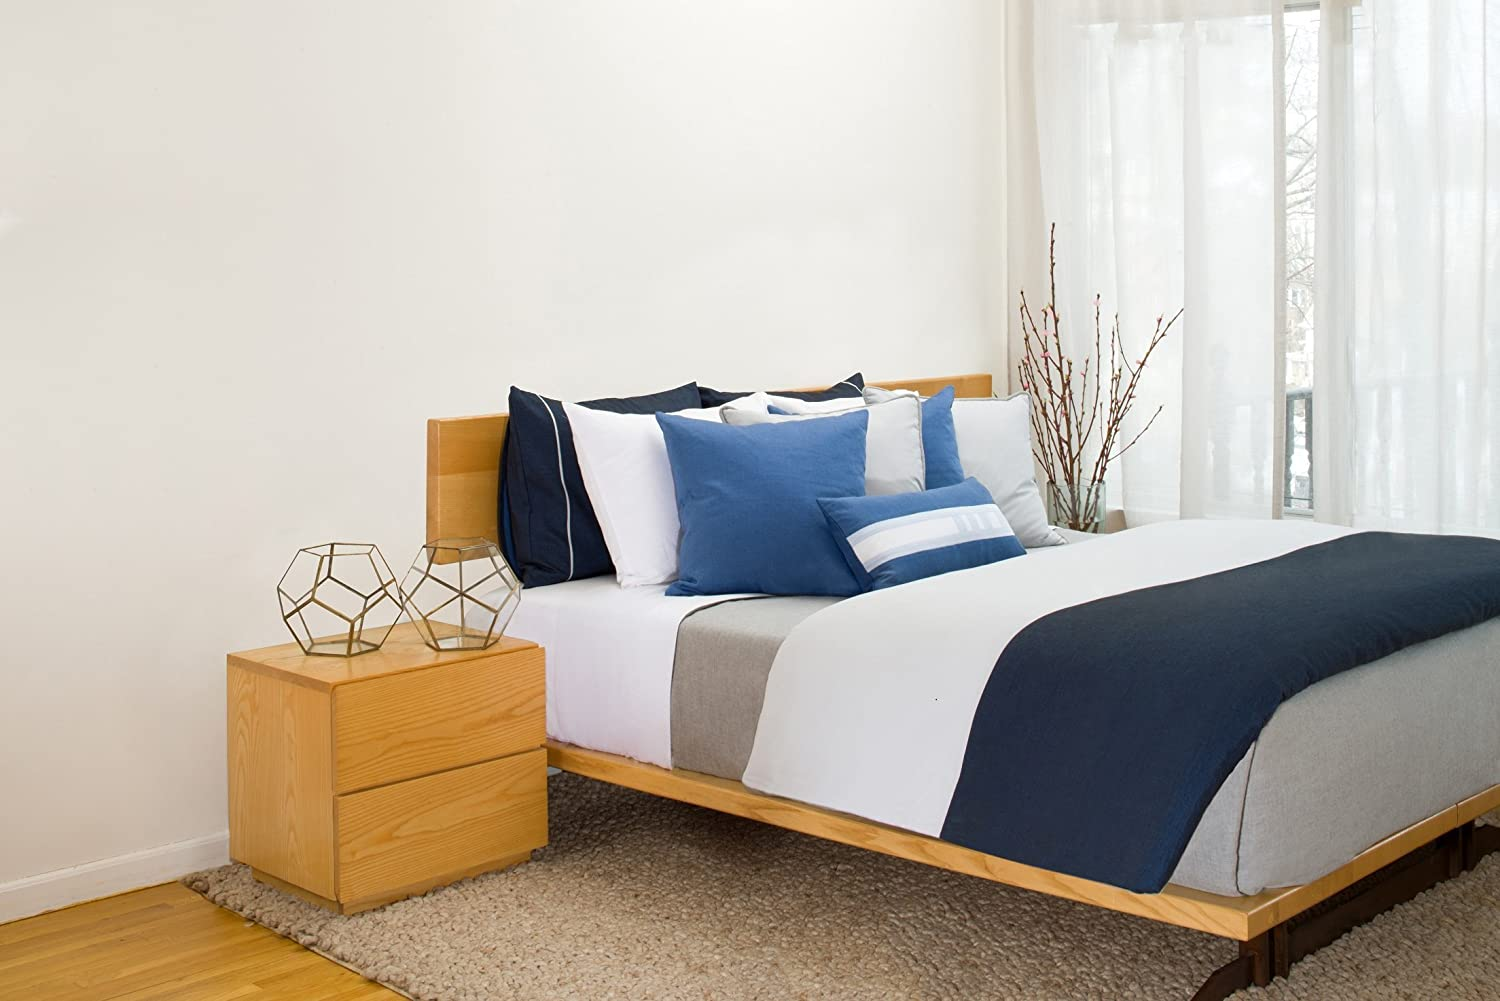 Image of 2 threads Duvet Cover in Navy and Gray